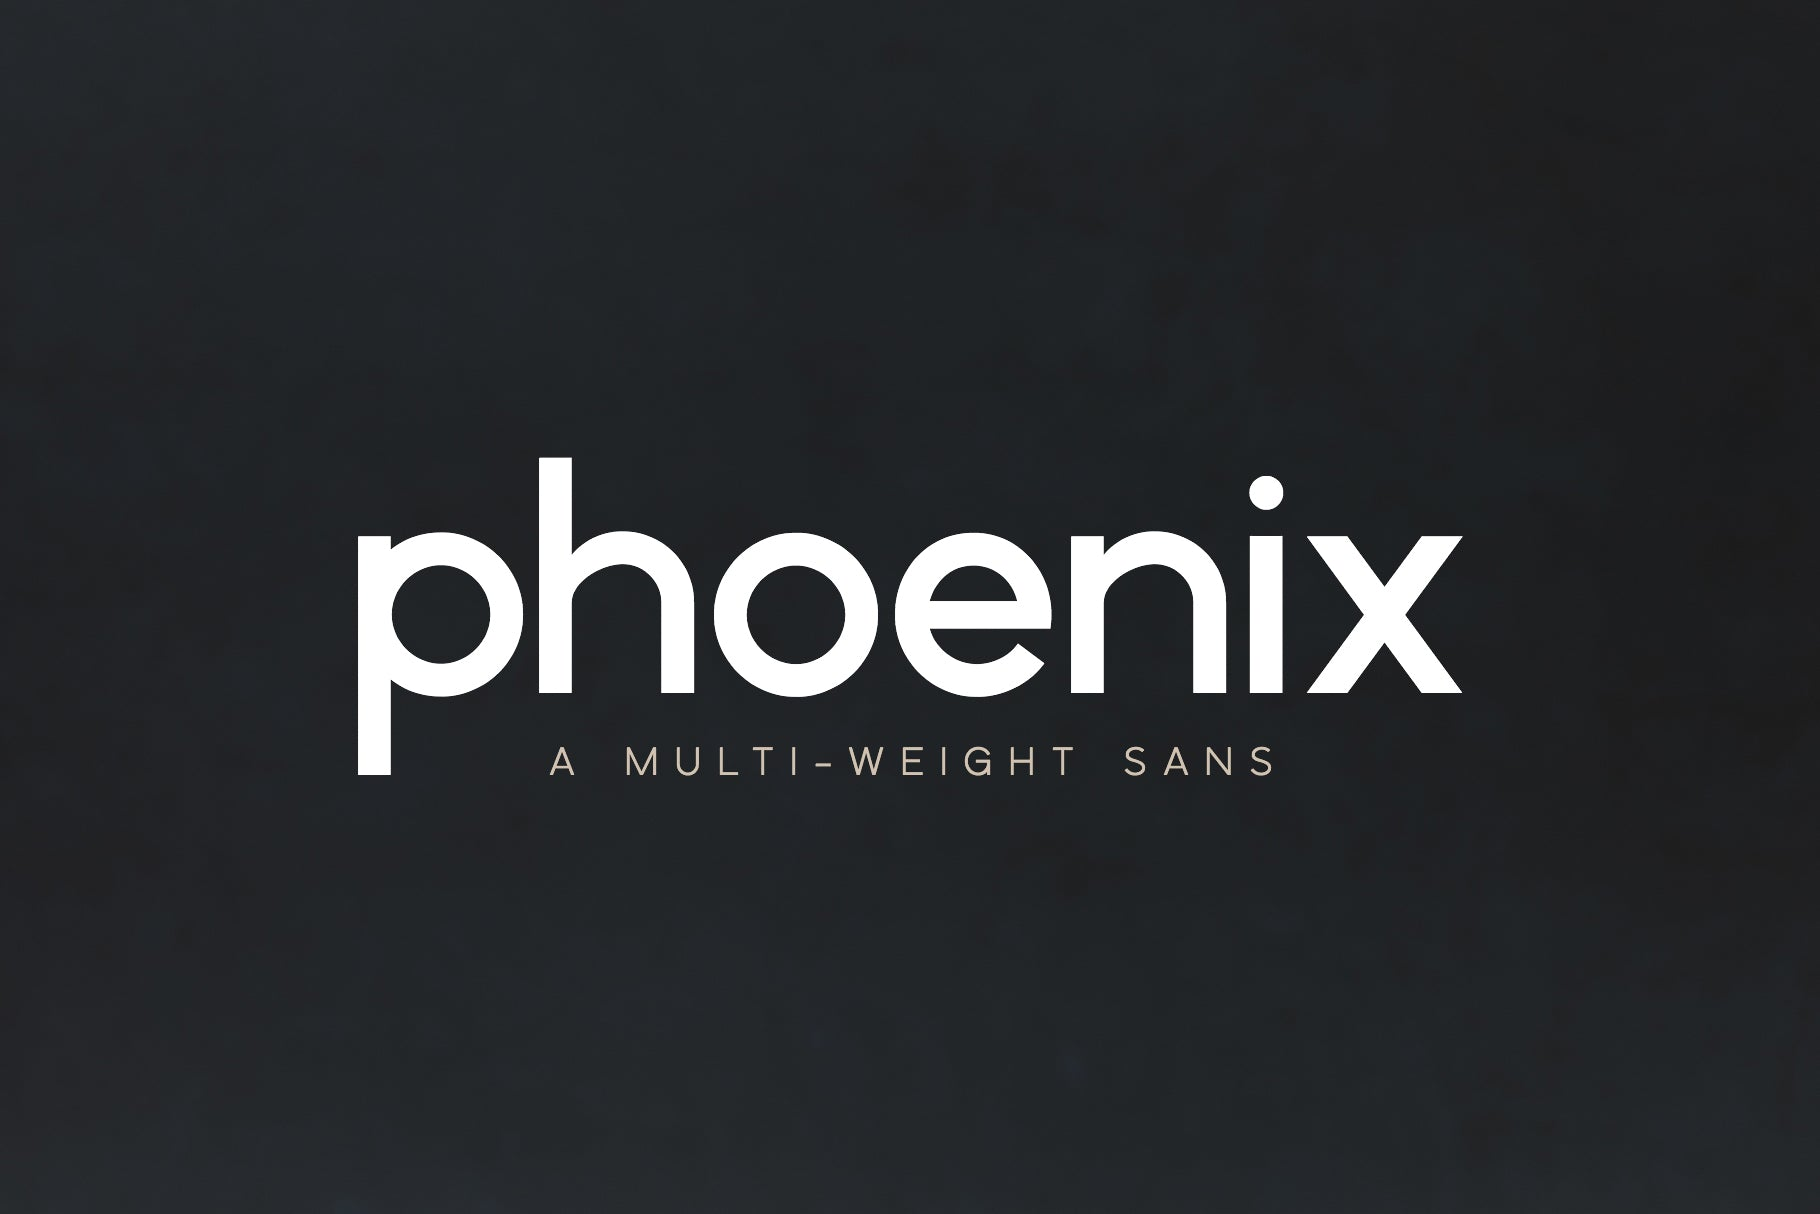 Phoenix | A Multi-Weight Sans